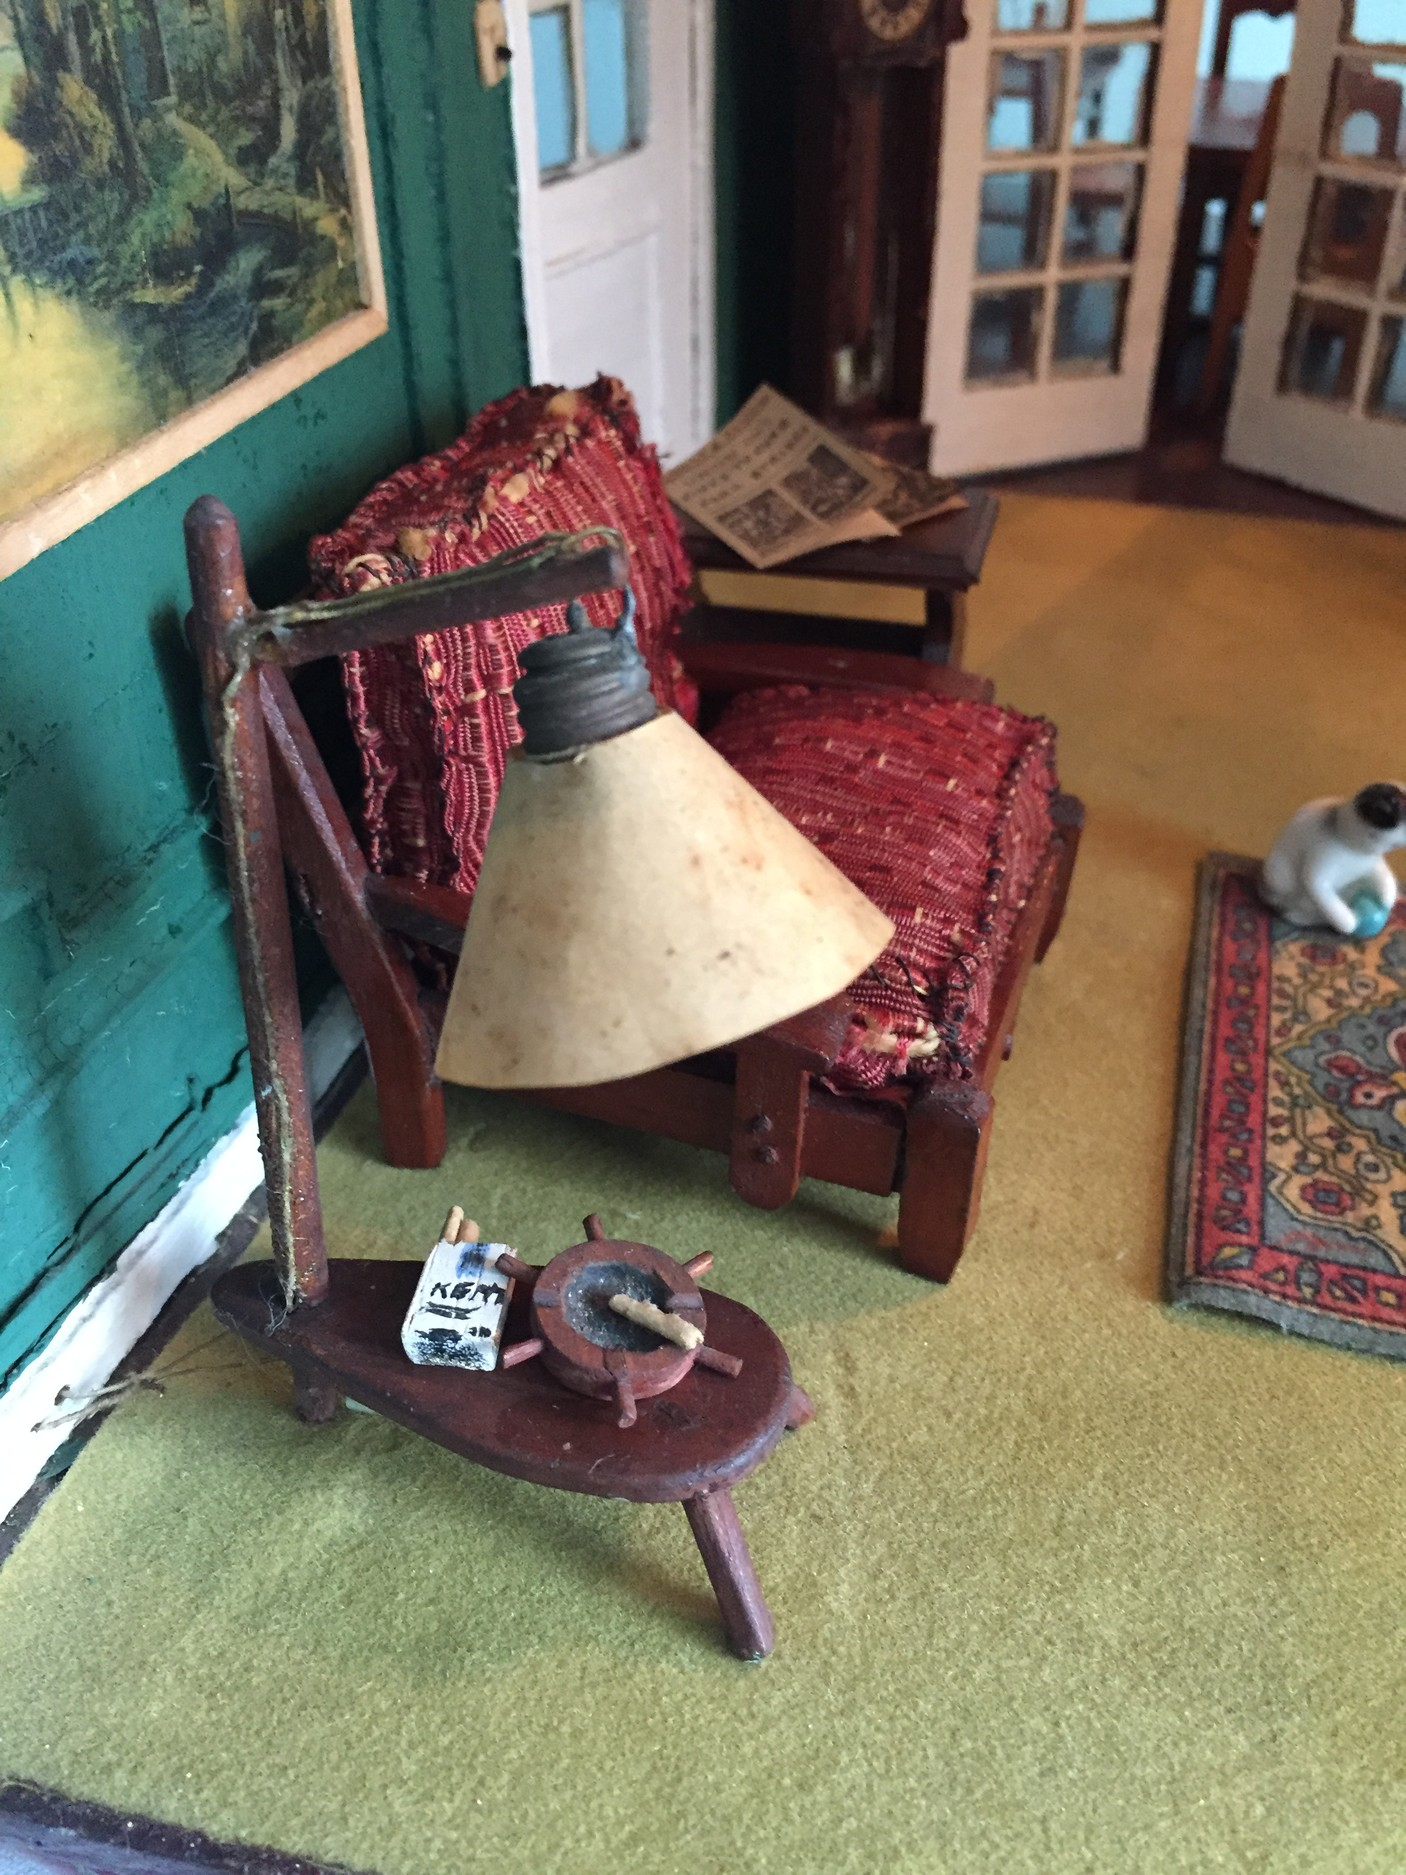 In the downstairs living room, there is a pack of smokes and an ashtray on a table with a working lamp. In the back stands a grandfather clock and one pair of French doors that lead into a dining area.